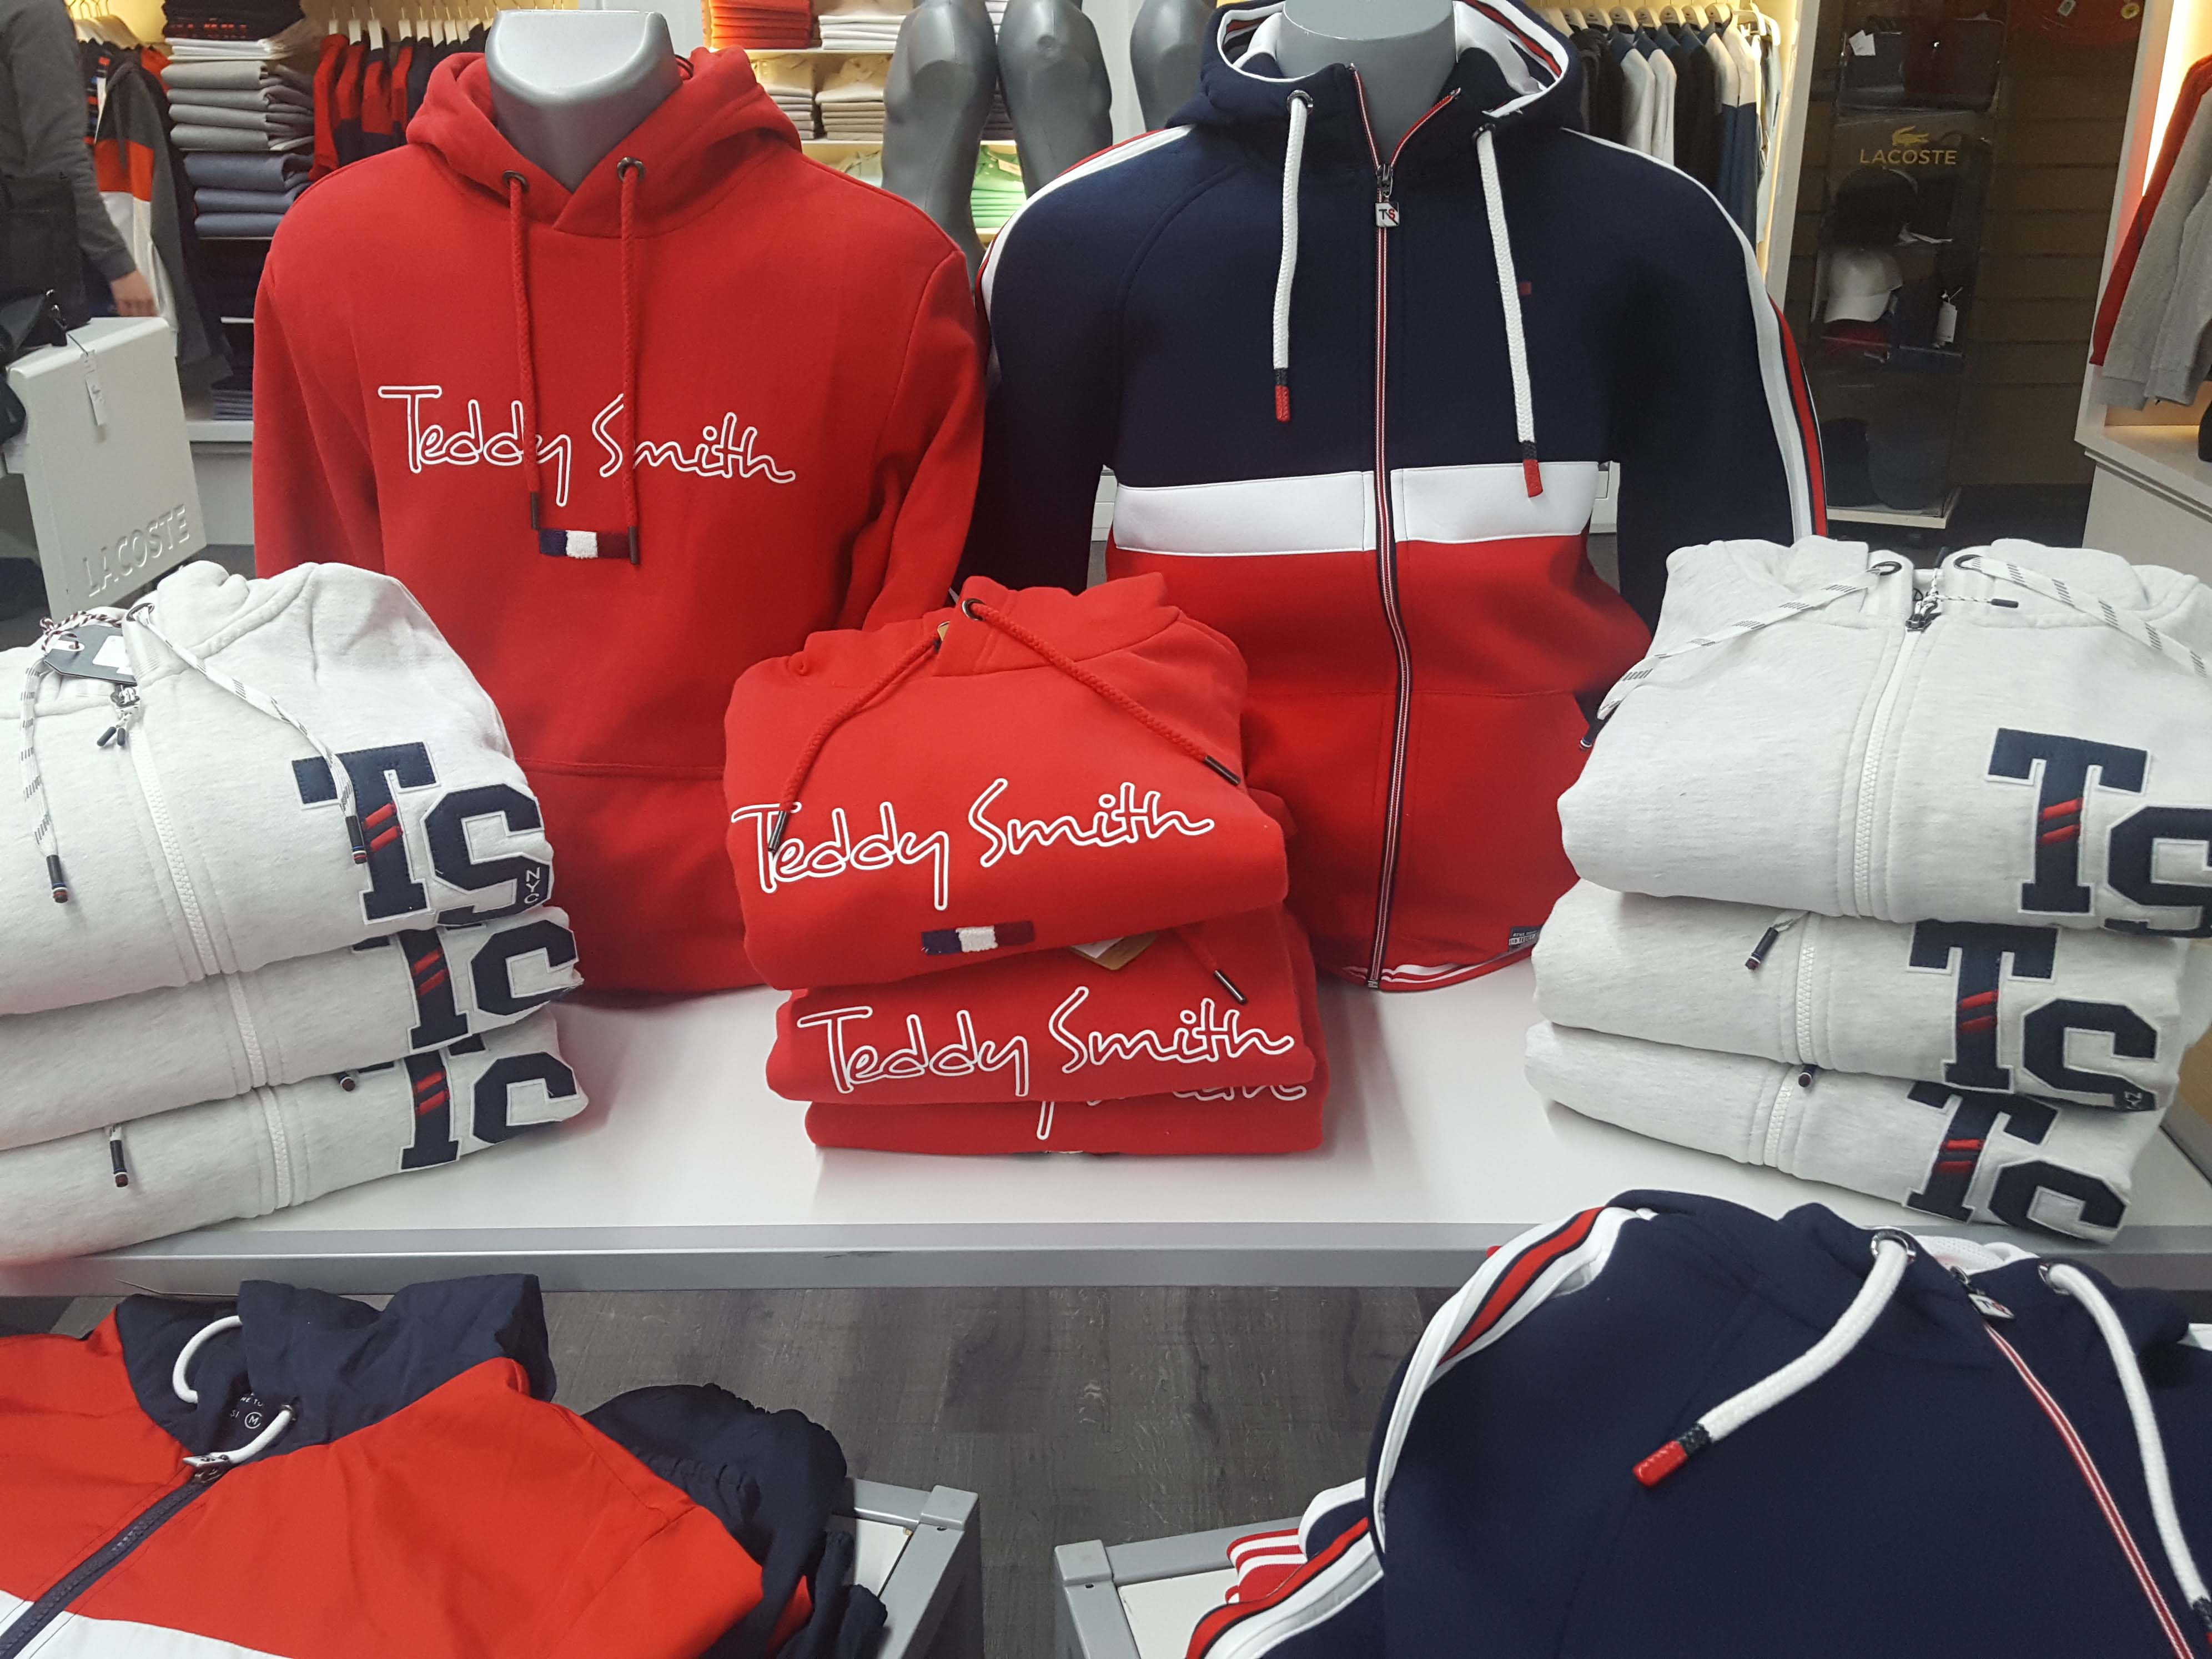 Nouvelle collection teddy Smith homme | SPORT 2000 Le Grand